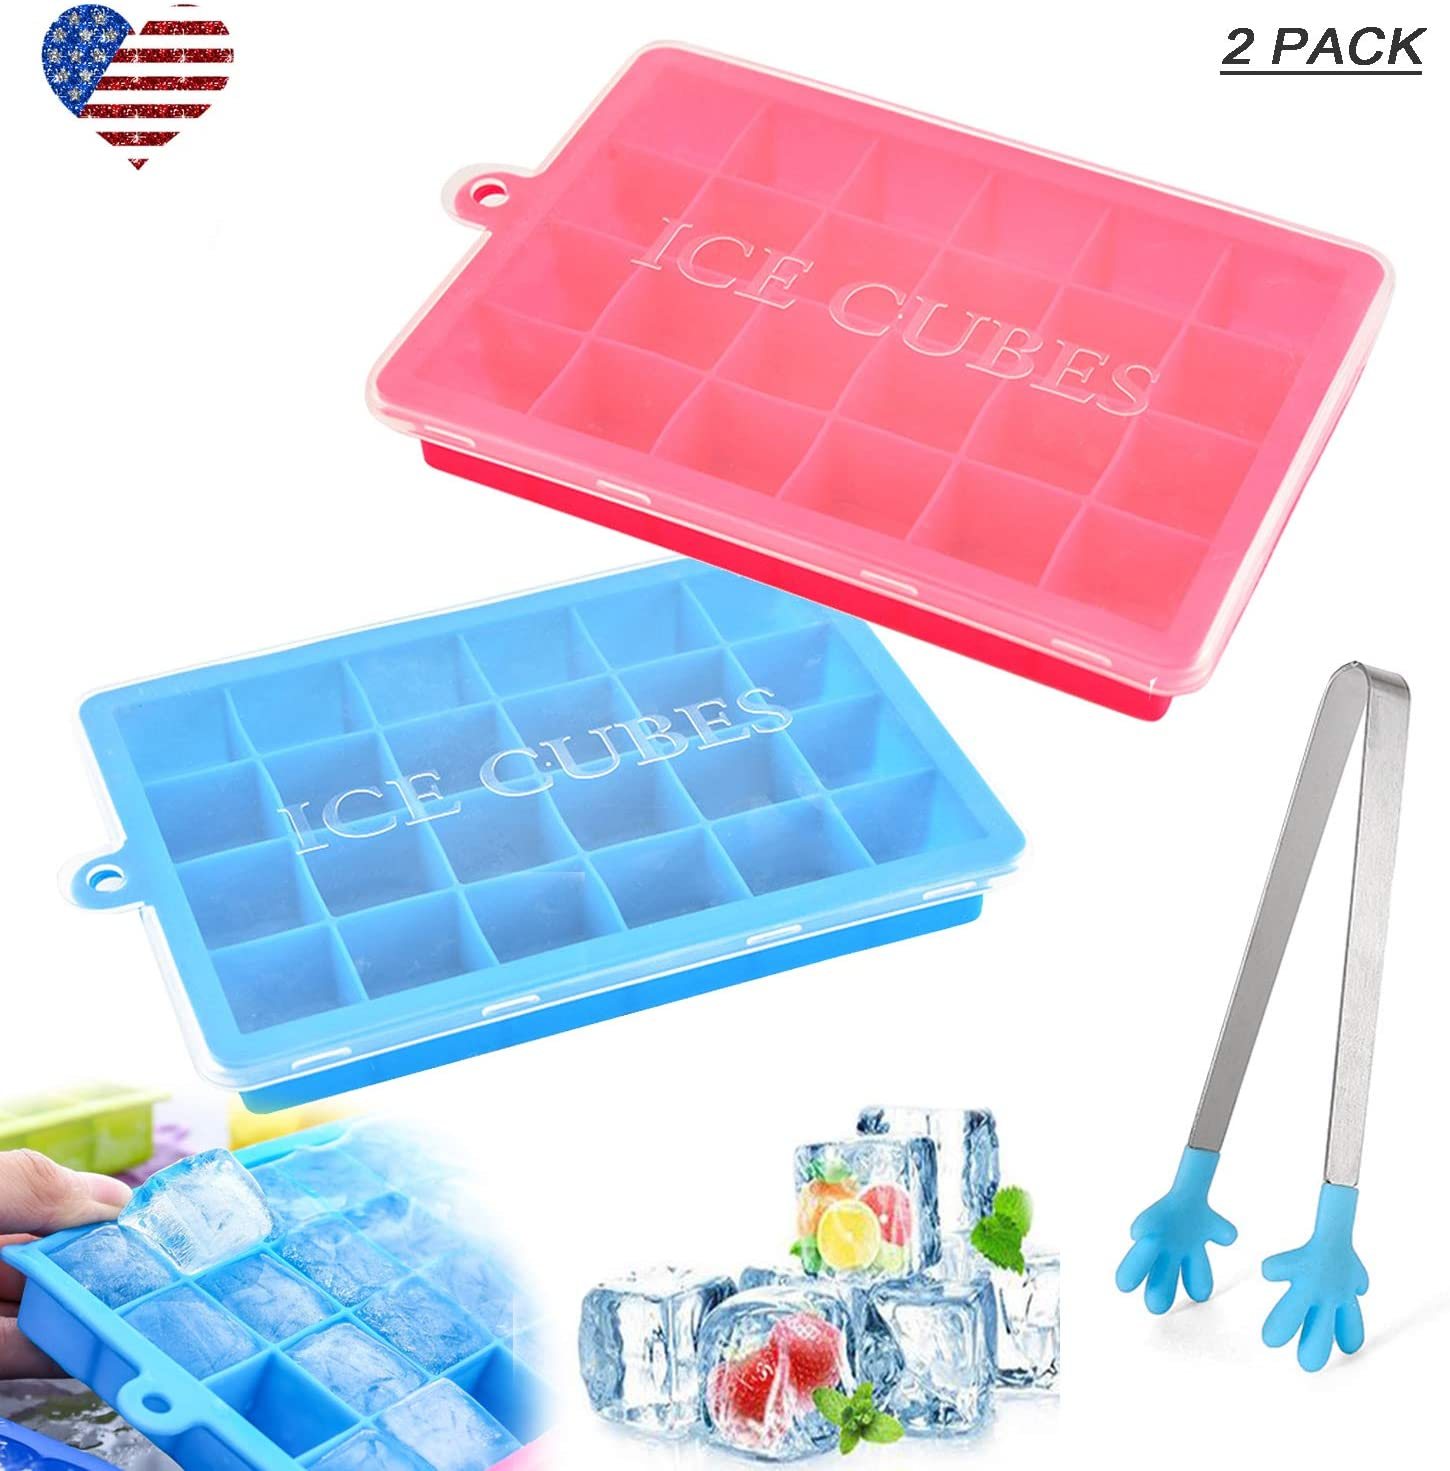 Ice Cube Trays Silicone with Lid Easy Release 24 Cubes Mold Value 2 Pack, Flexible Ice Cubes Molds Tray with Tongs for Cocktail Baby Food Chocolate Whiskey Candy (2 Pack 24 Cubes Tray in Blue&Pink)